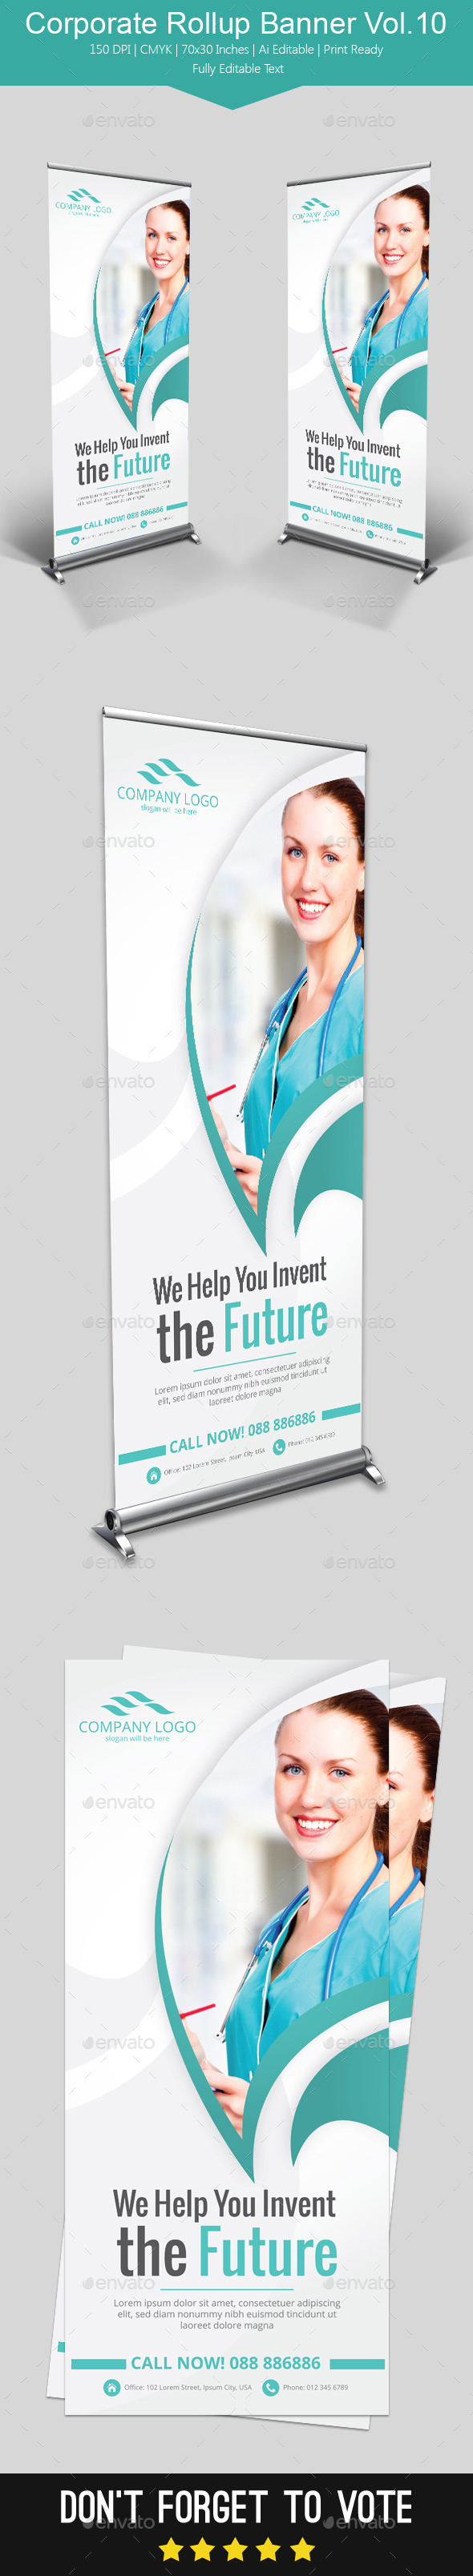 Corporate Rollup Banner Vol.10 - Signage Print Templates